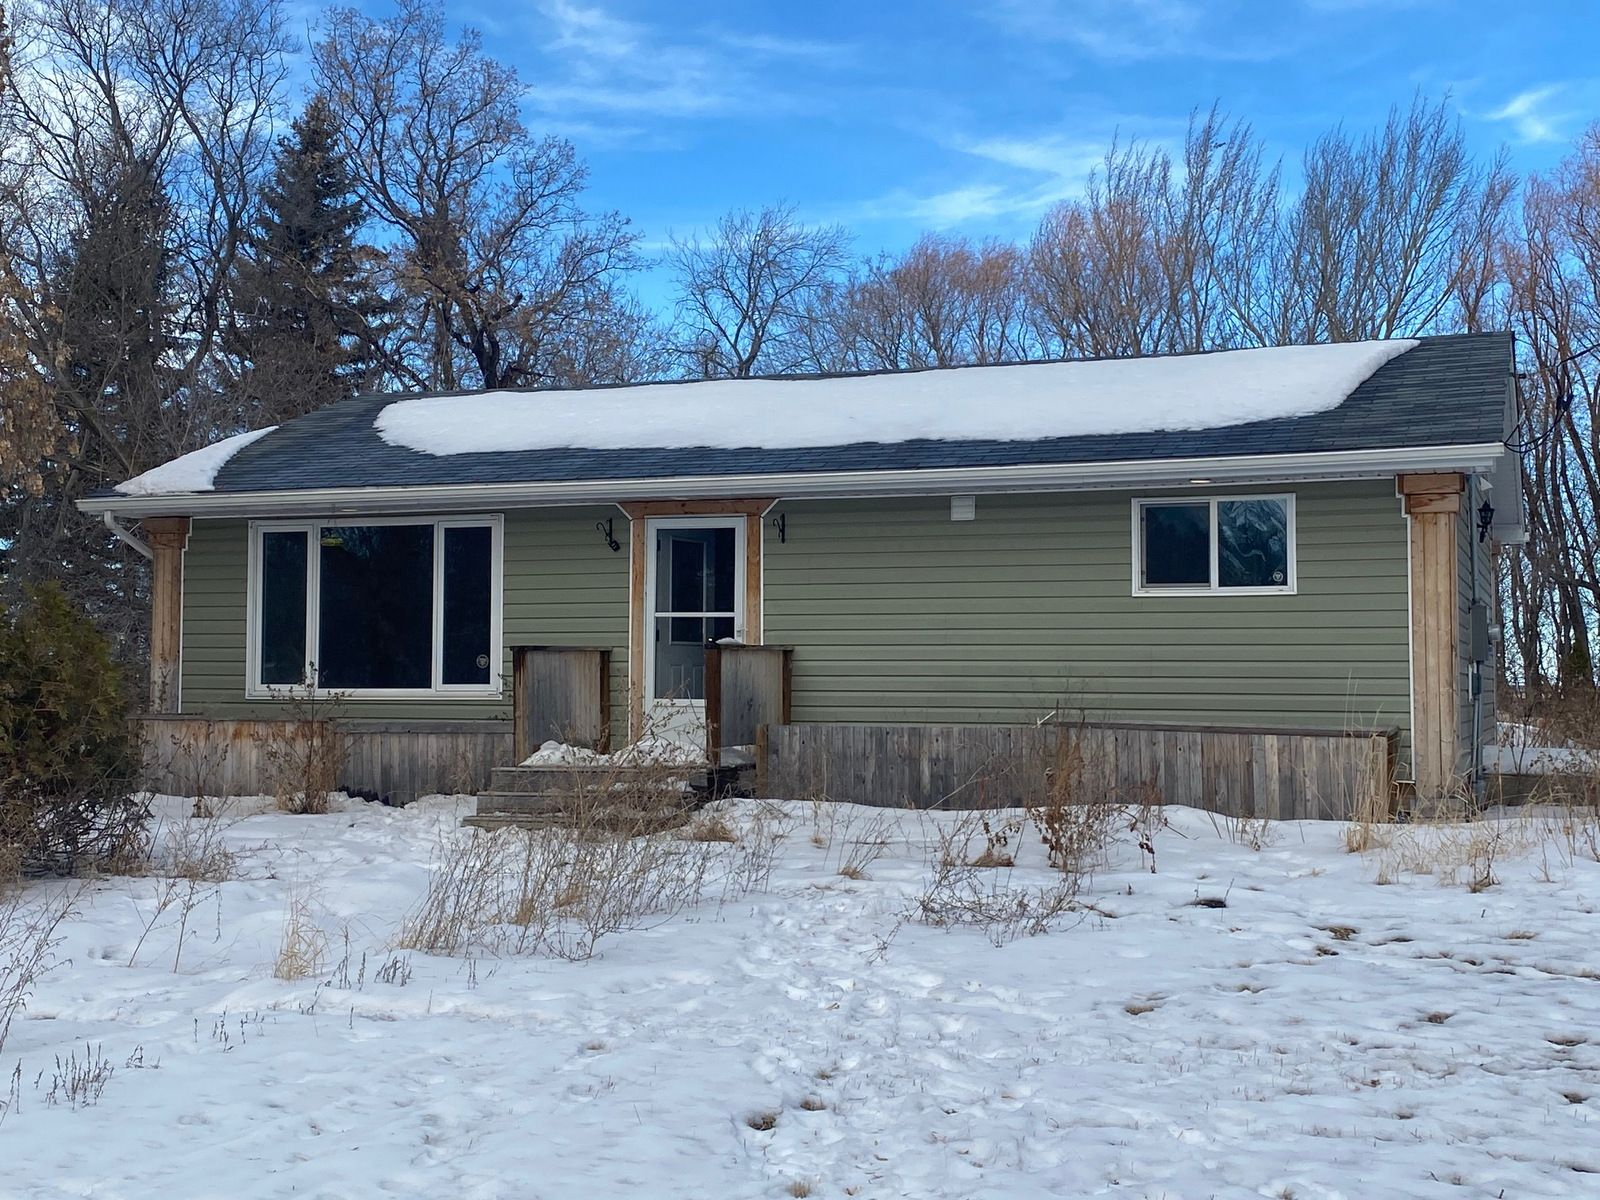 Main Photo: 251 Main Street in Poplar Point: House for sale : MLS®# 202103822